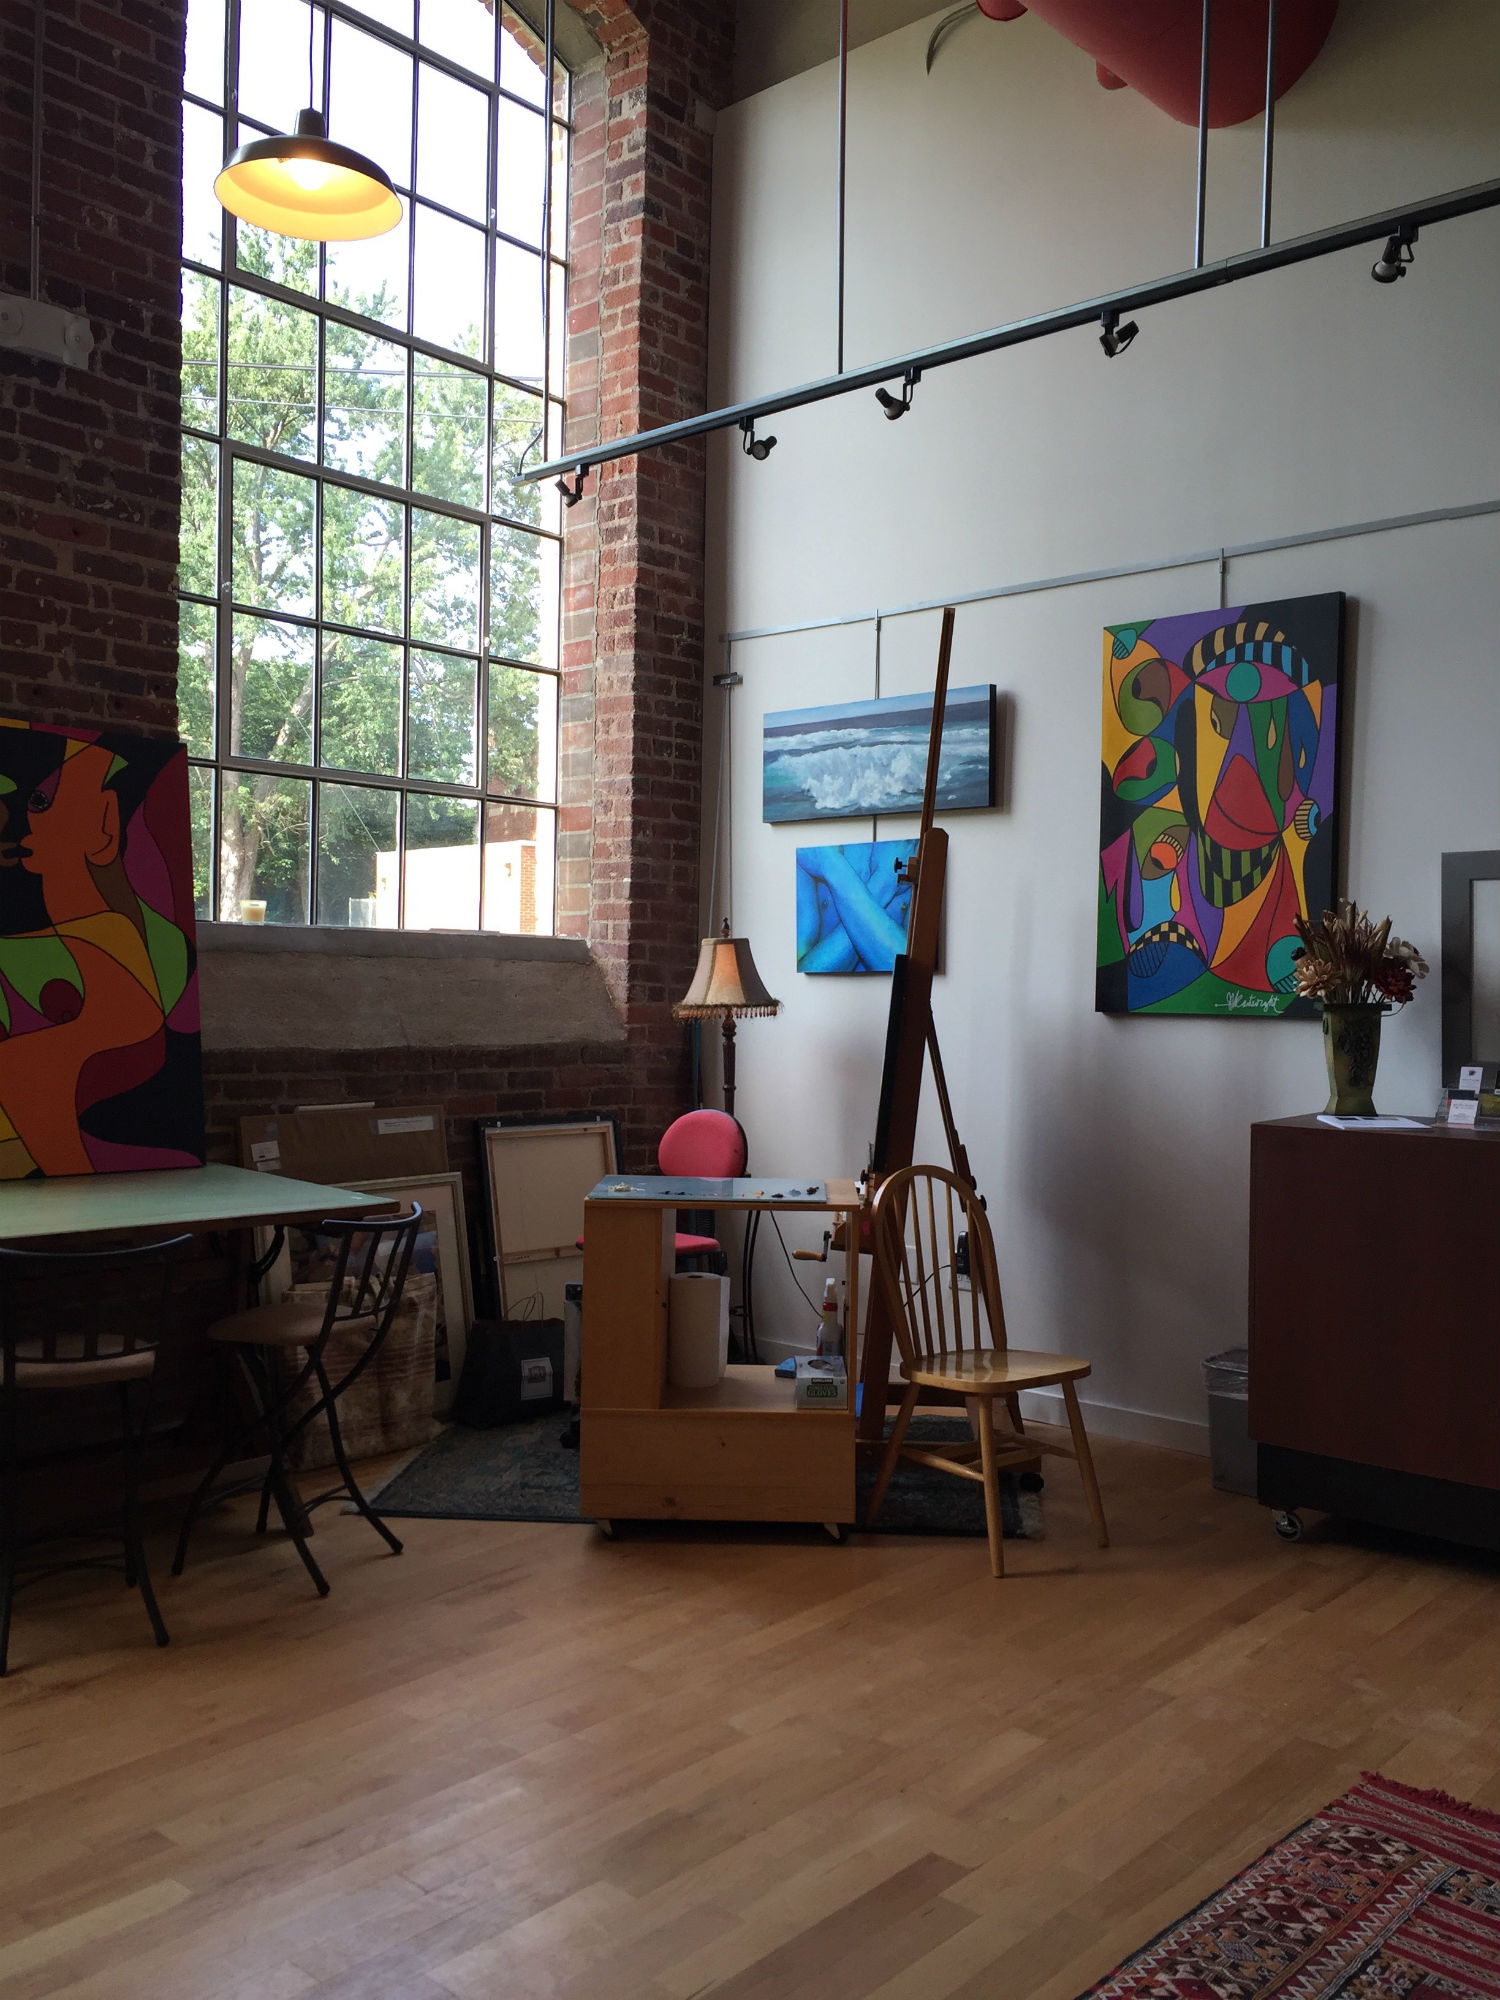 working-space-phyllis-sharpe-new-studio-revolution-mill-fine-art-greensboro-nc-IMG_2298.jpg